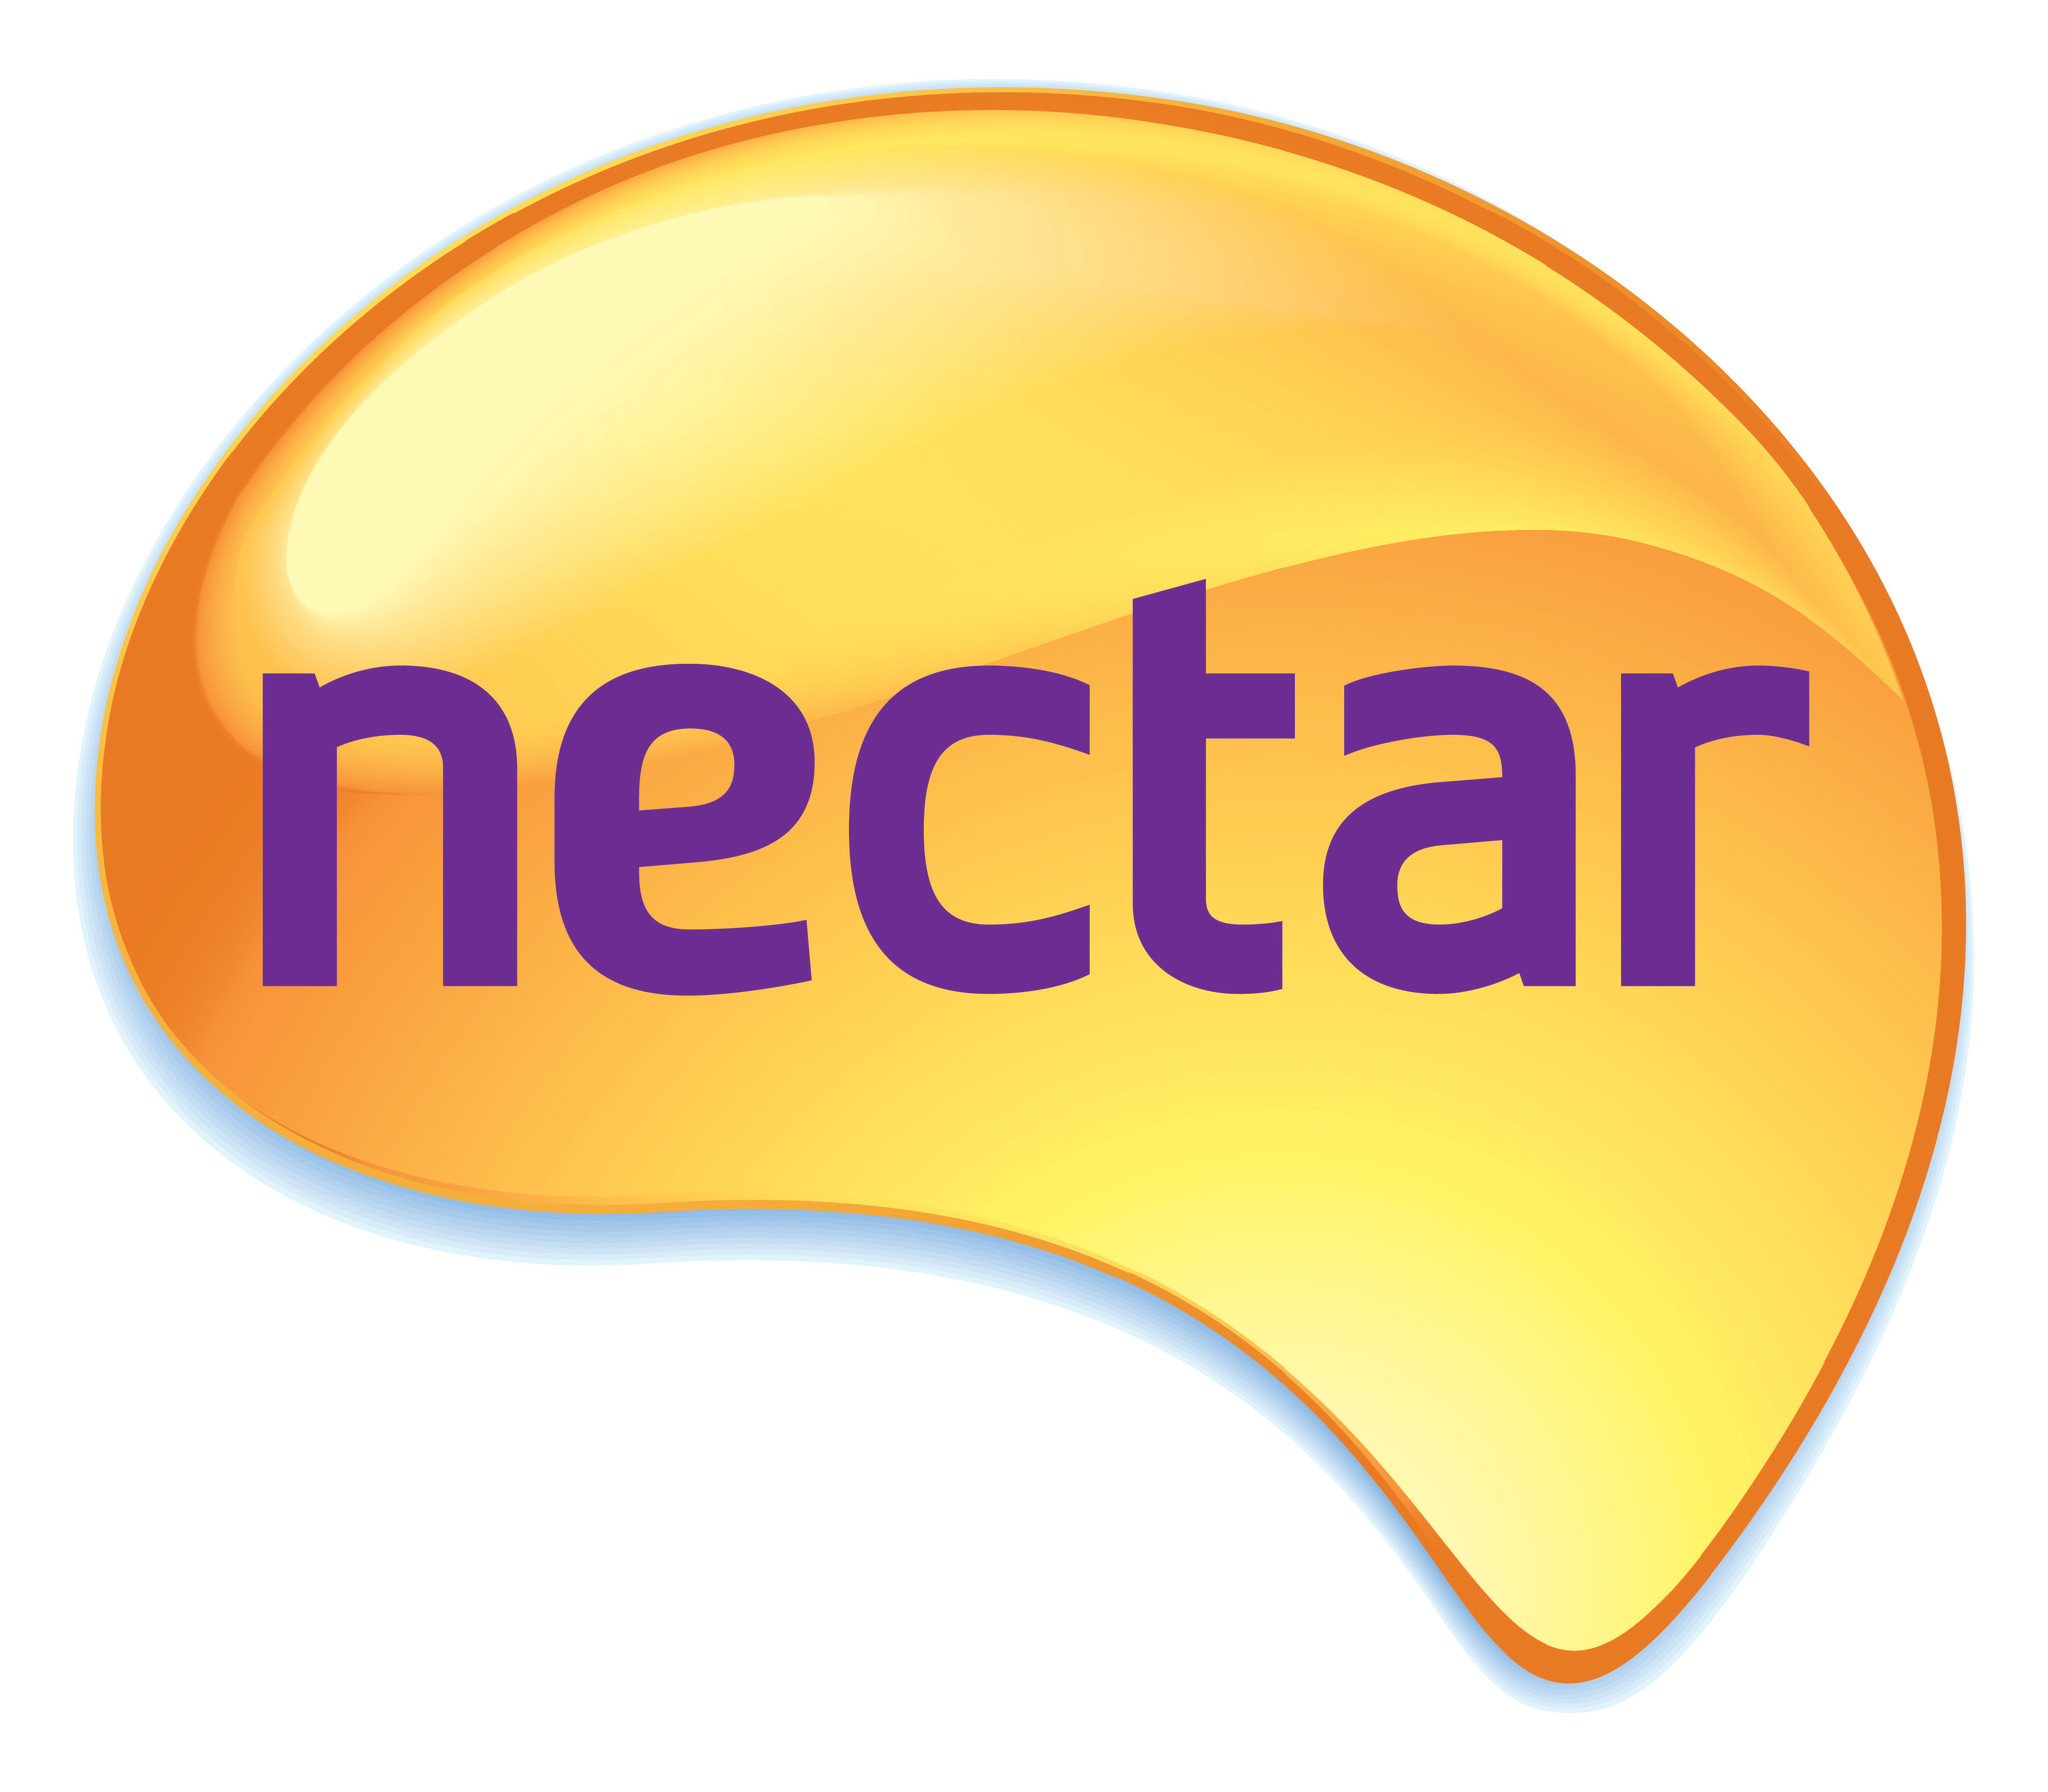 Nectar clipart summertime  news Nectar Latest